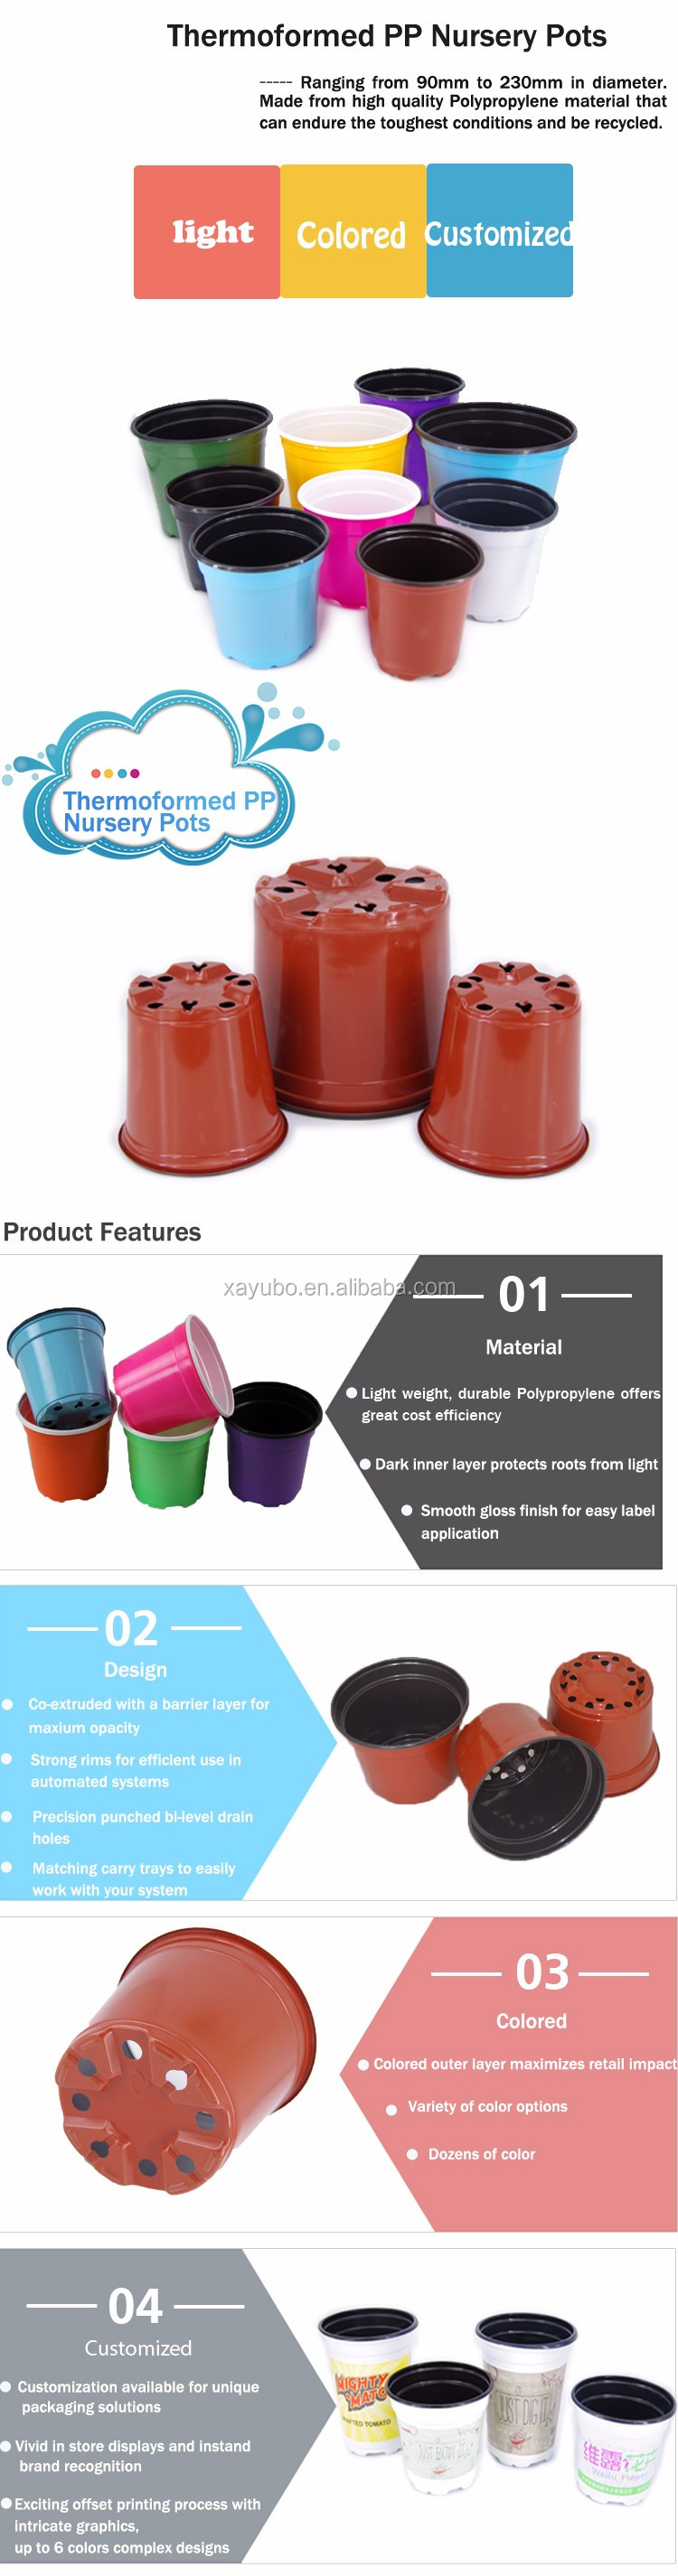 high quality plastic flower pot nursery pot for garden plant